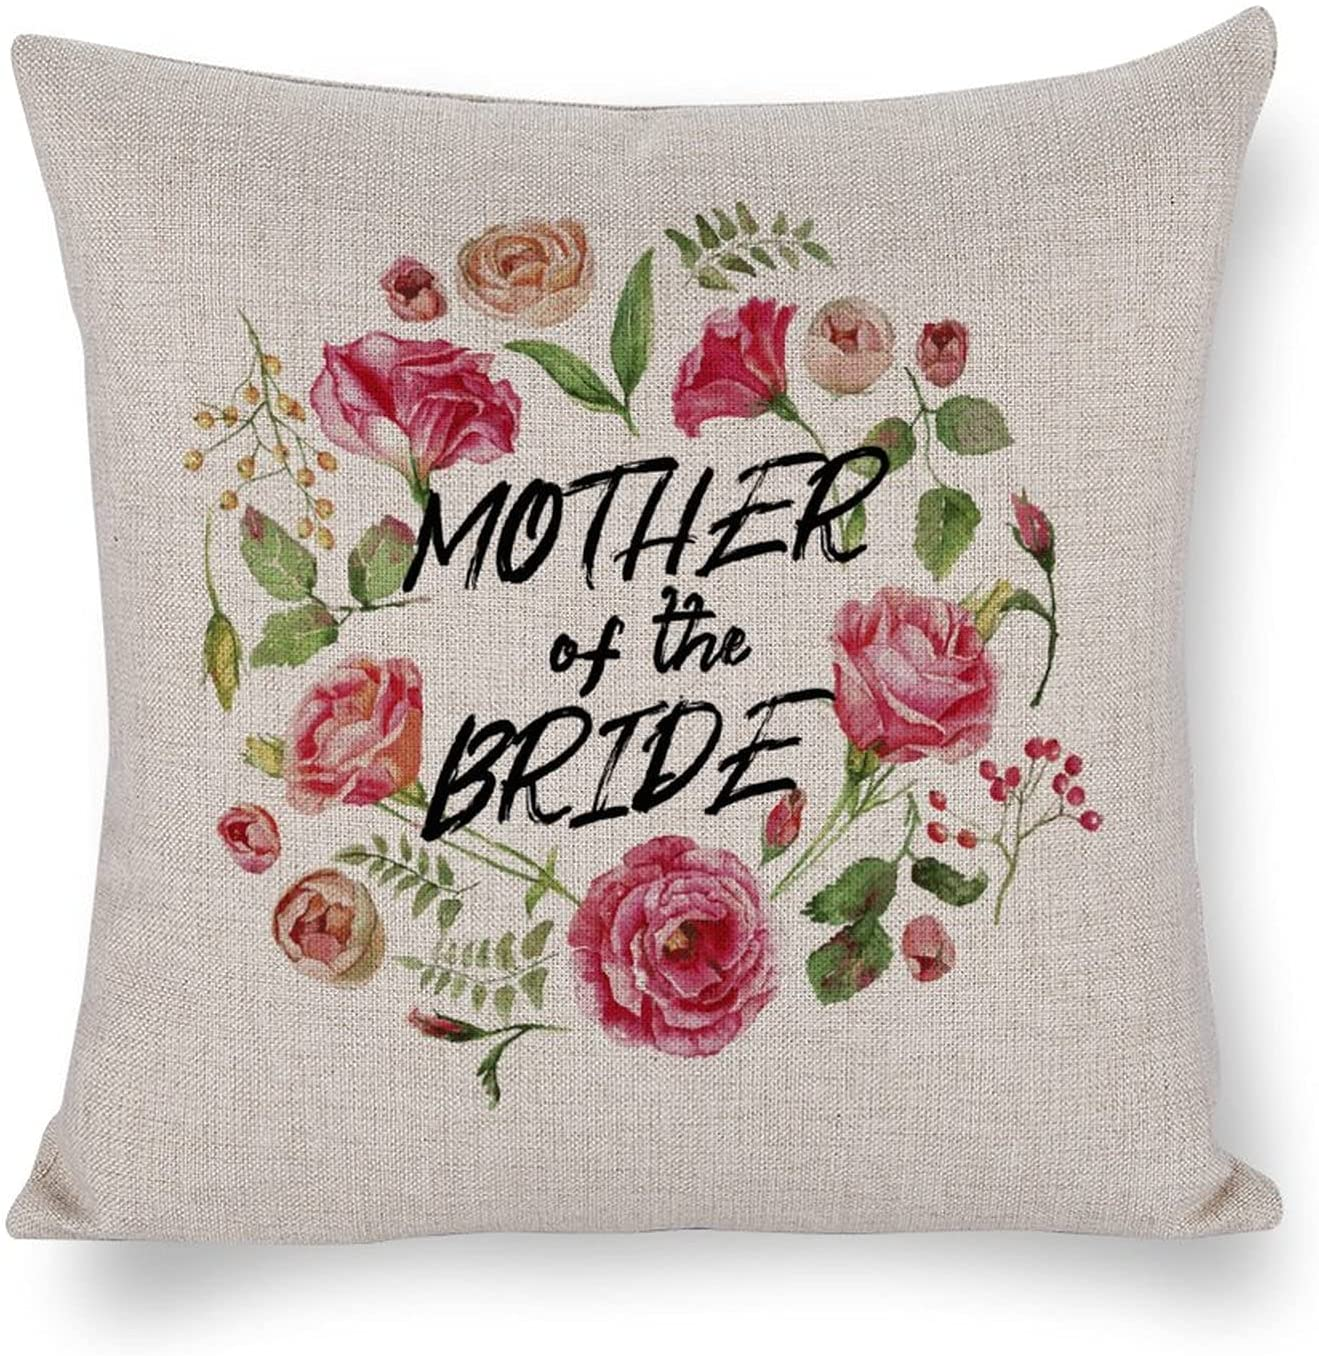 UTF4C Mother Sales High material for sale of The Bride Cotton Sofa Cushion Art Linen Home Bed